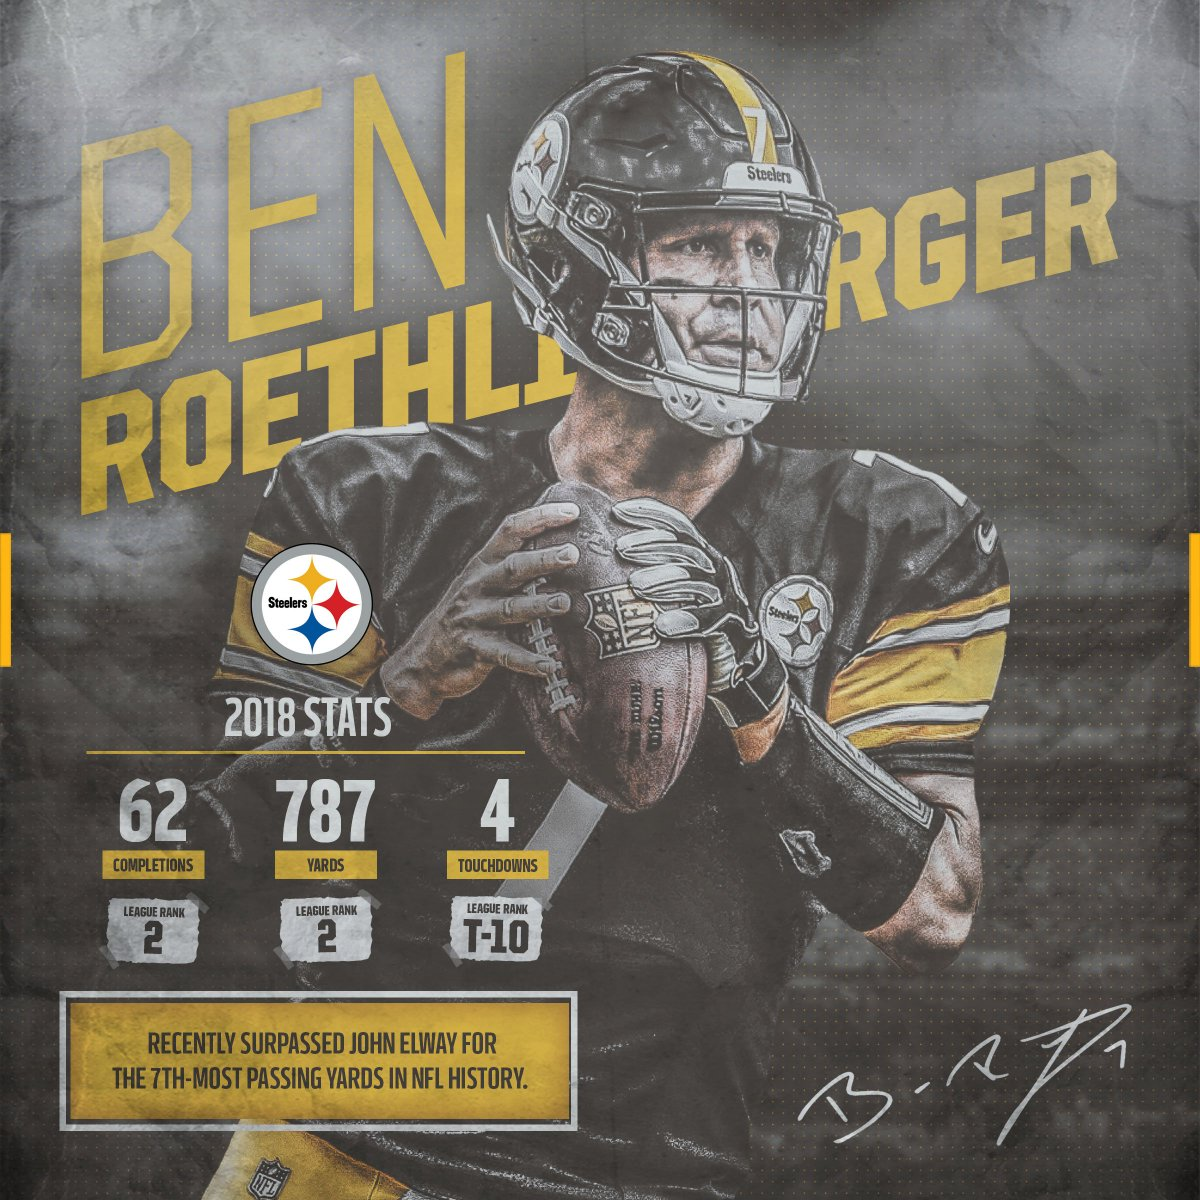 2018 Pittsburgh Steelers - Position Battle & Player Stats